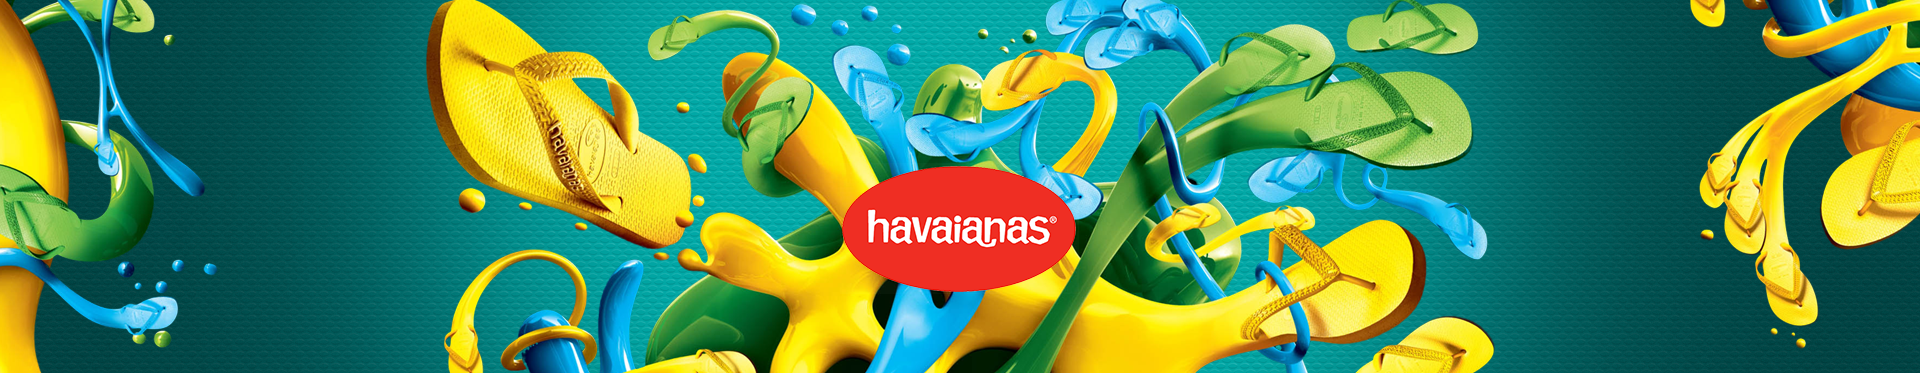 imagens/upload/banner-inicio/banners-principal-havaianas-sandalhas.png